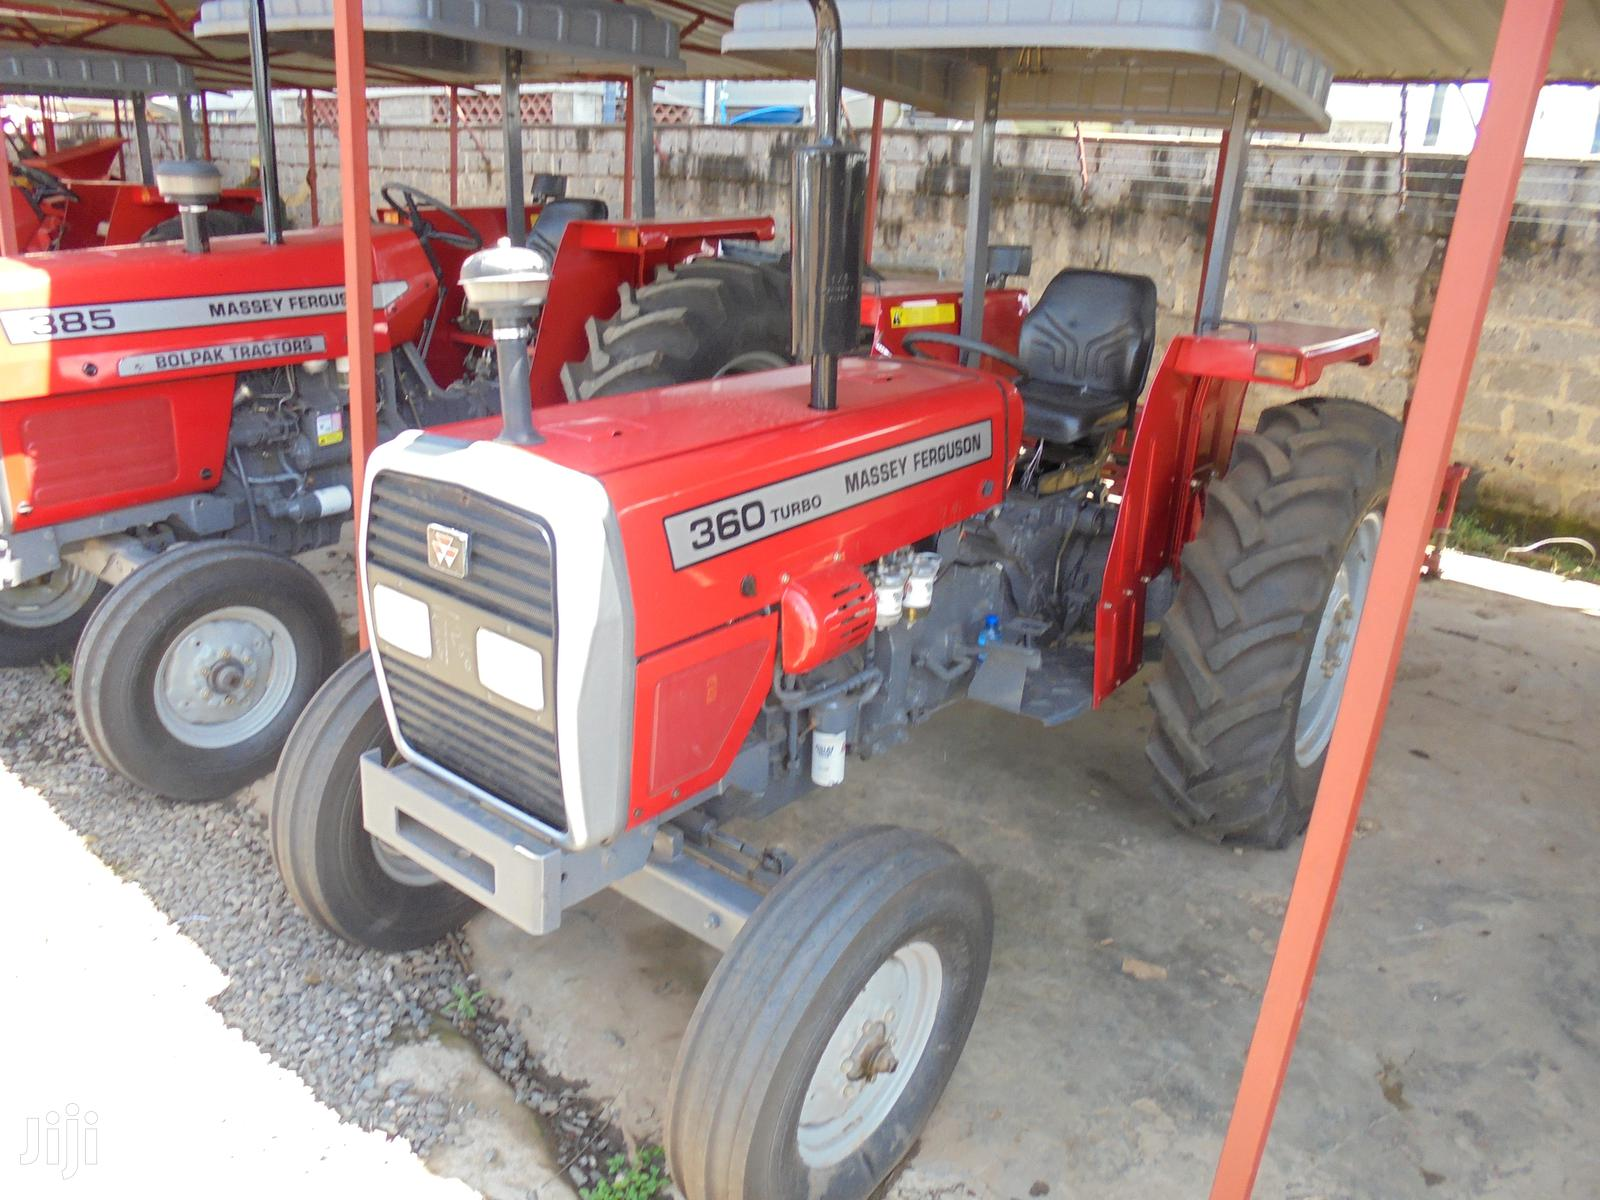 Tractor Mf 360 2wd 1.45